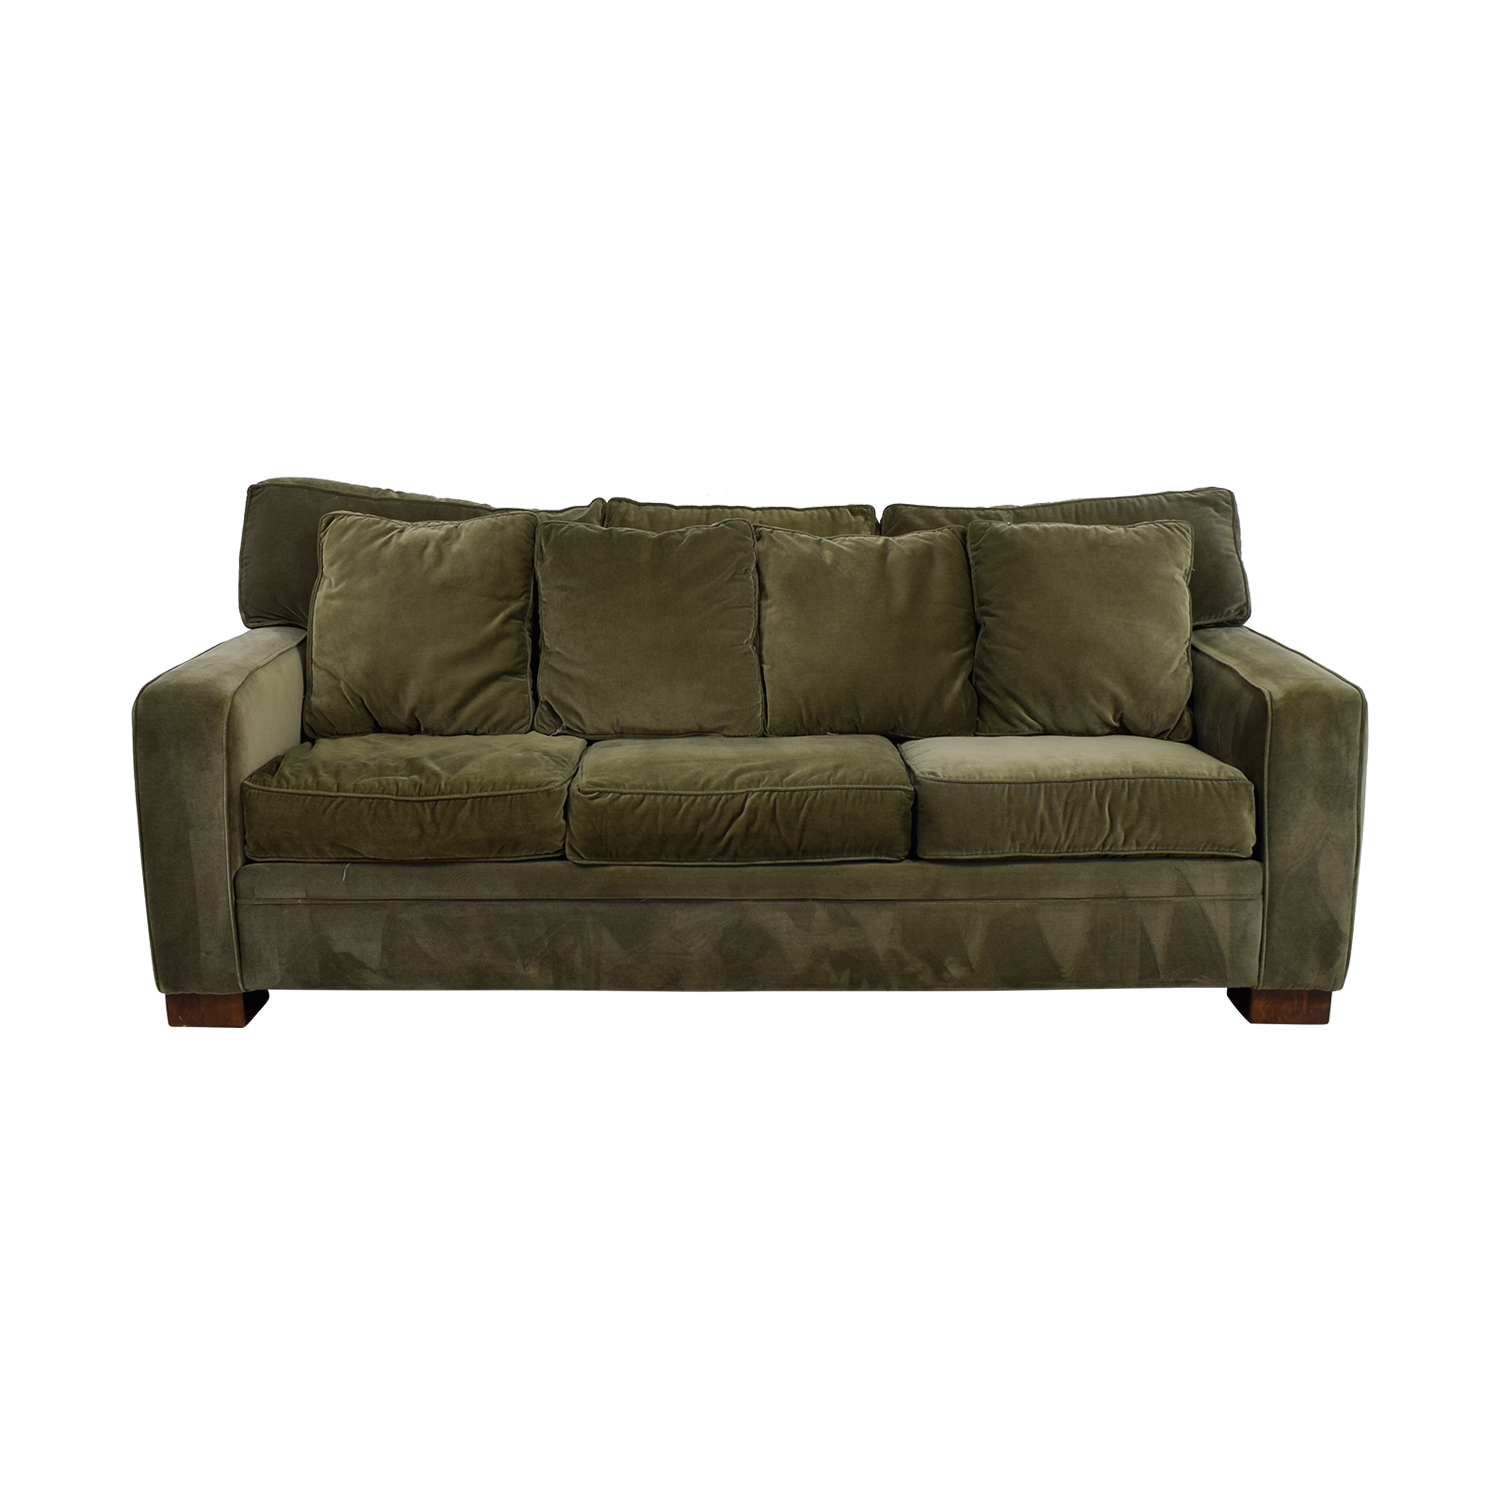 Macys Couch: Macy's Macy's Sage Green Three-Cushion Couch / Sofas